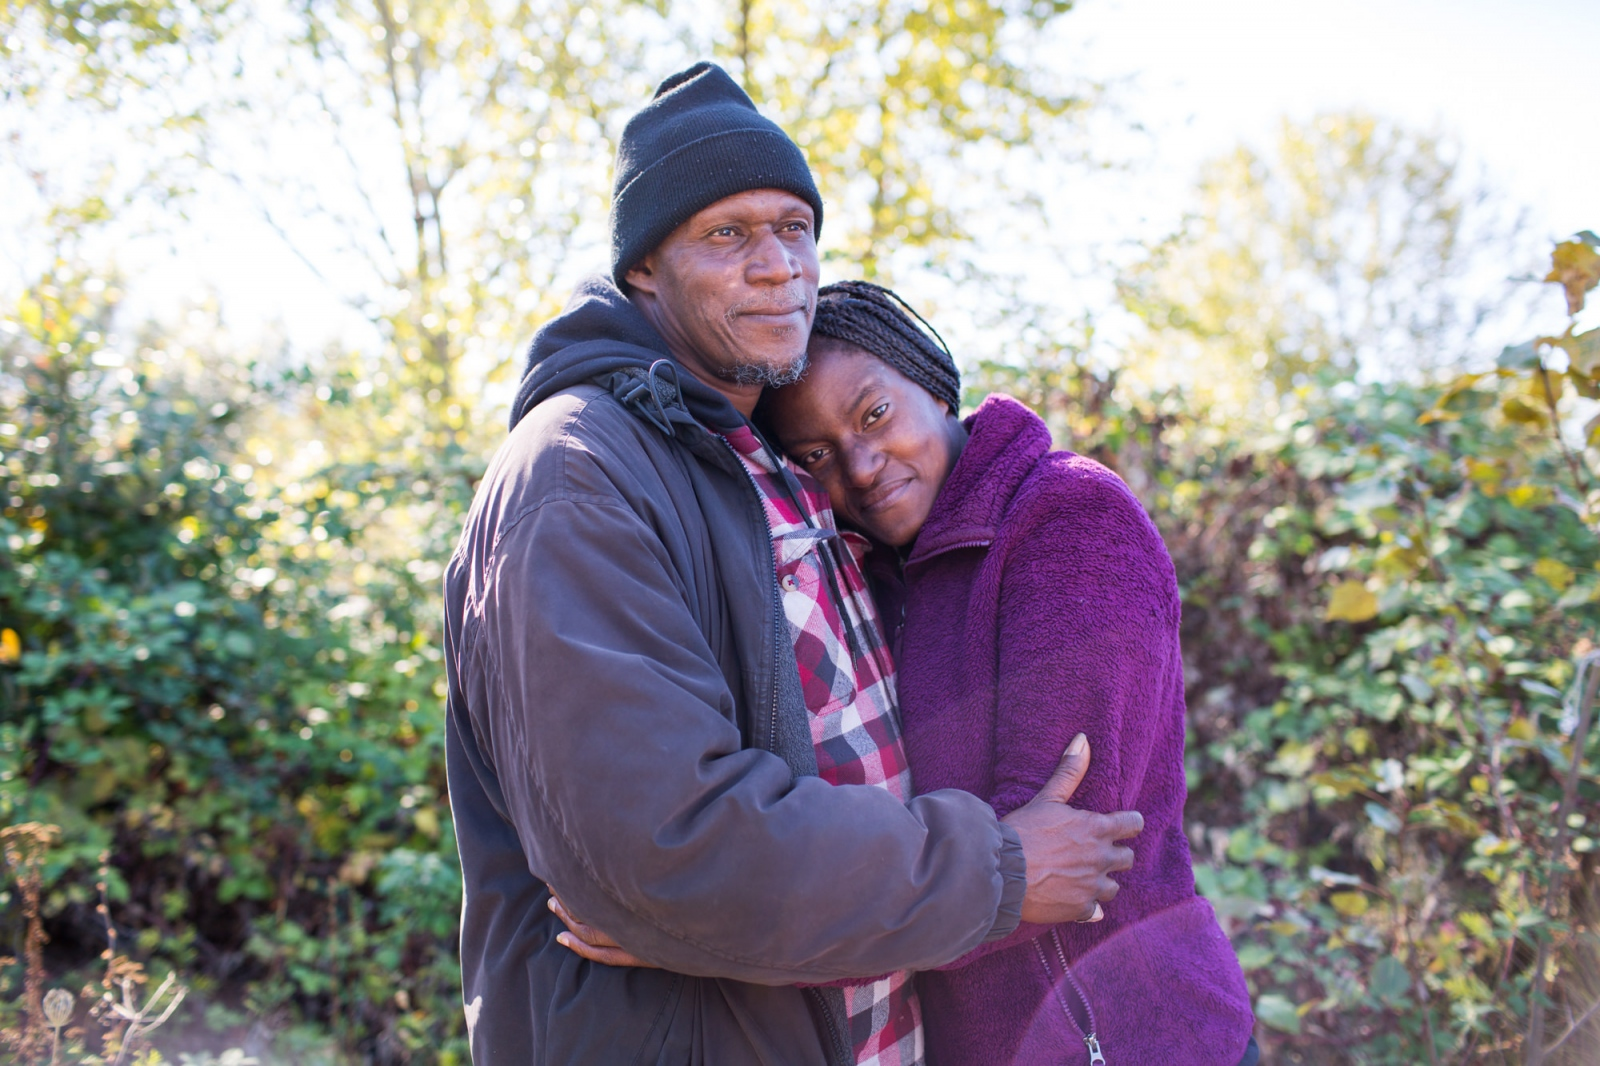 William and Lakenya, Camp Second Chance, Seattle, WA from the series 'Love without Shelter'